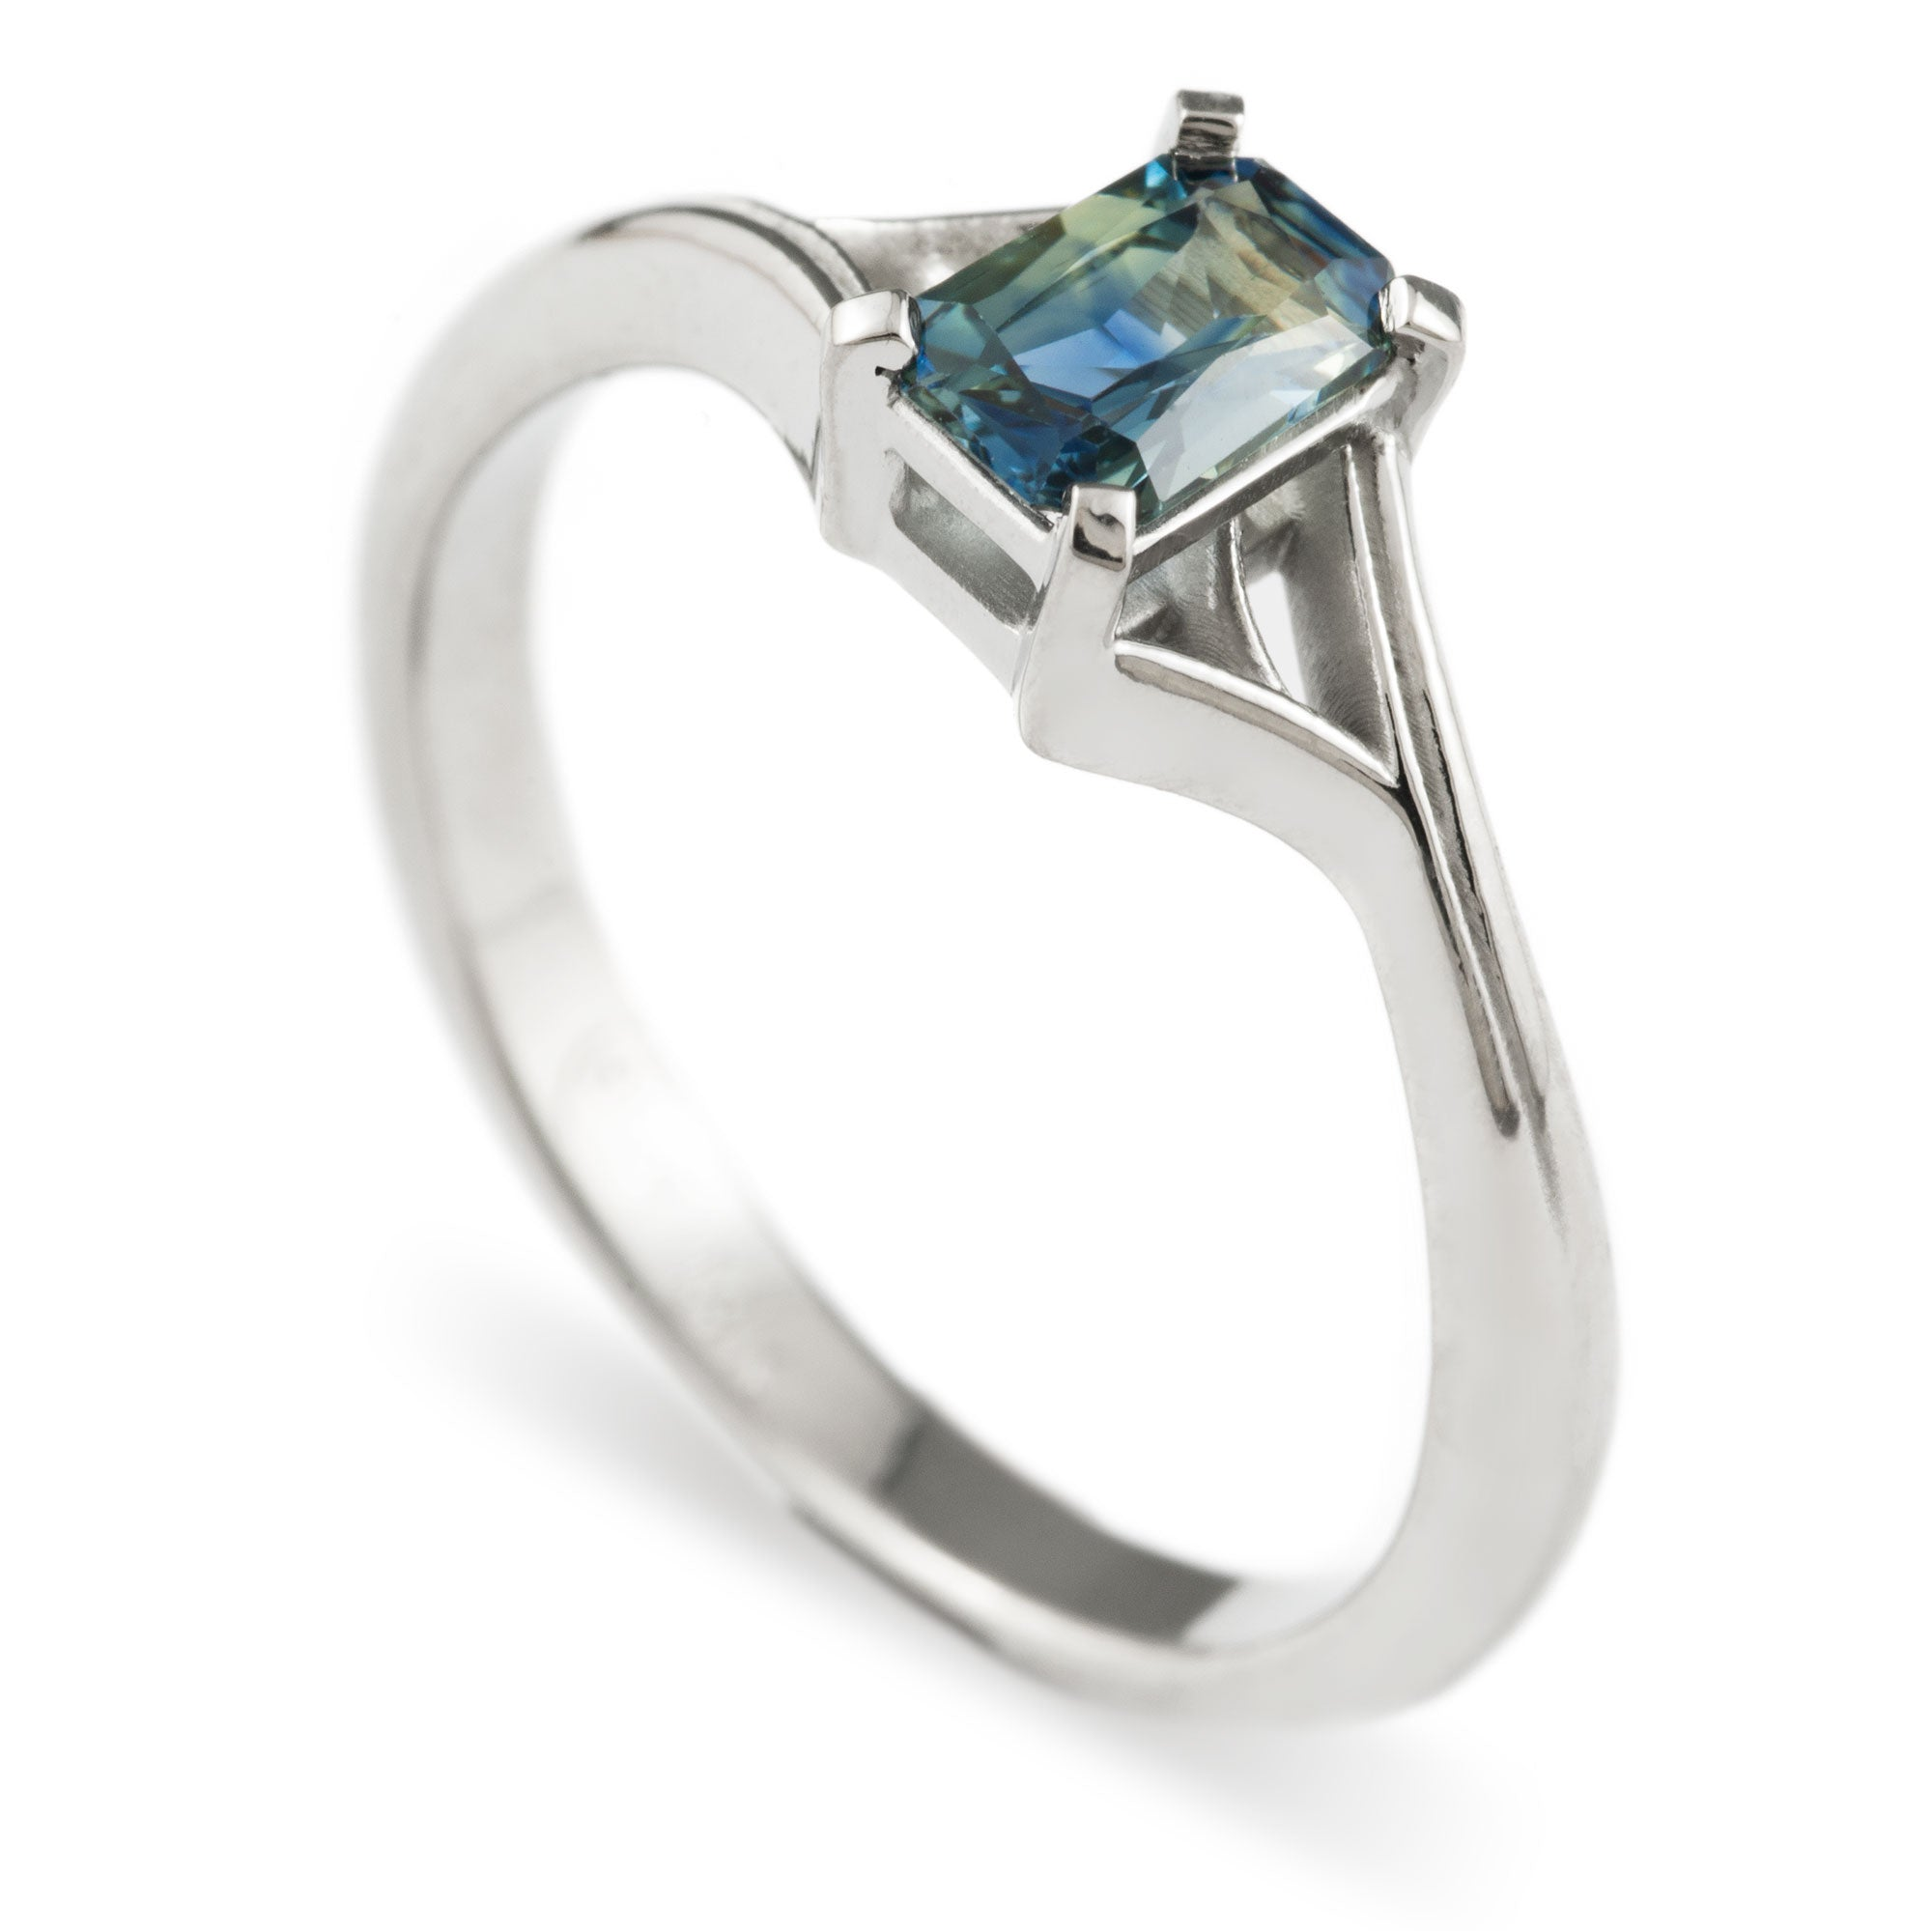 14kt white gold twig engagement ring emerald cut Australian sapphire solitaire era design